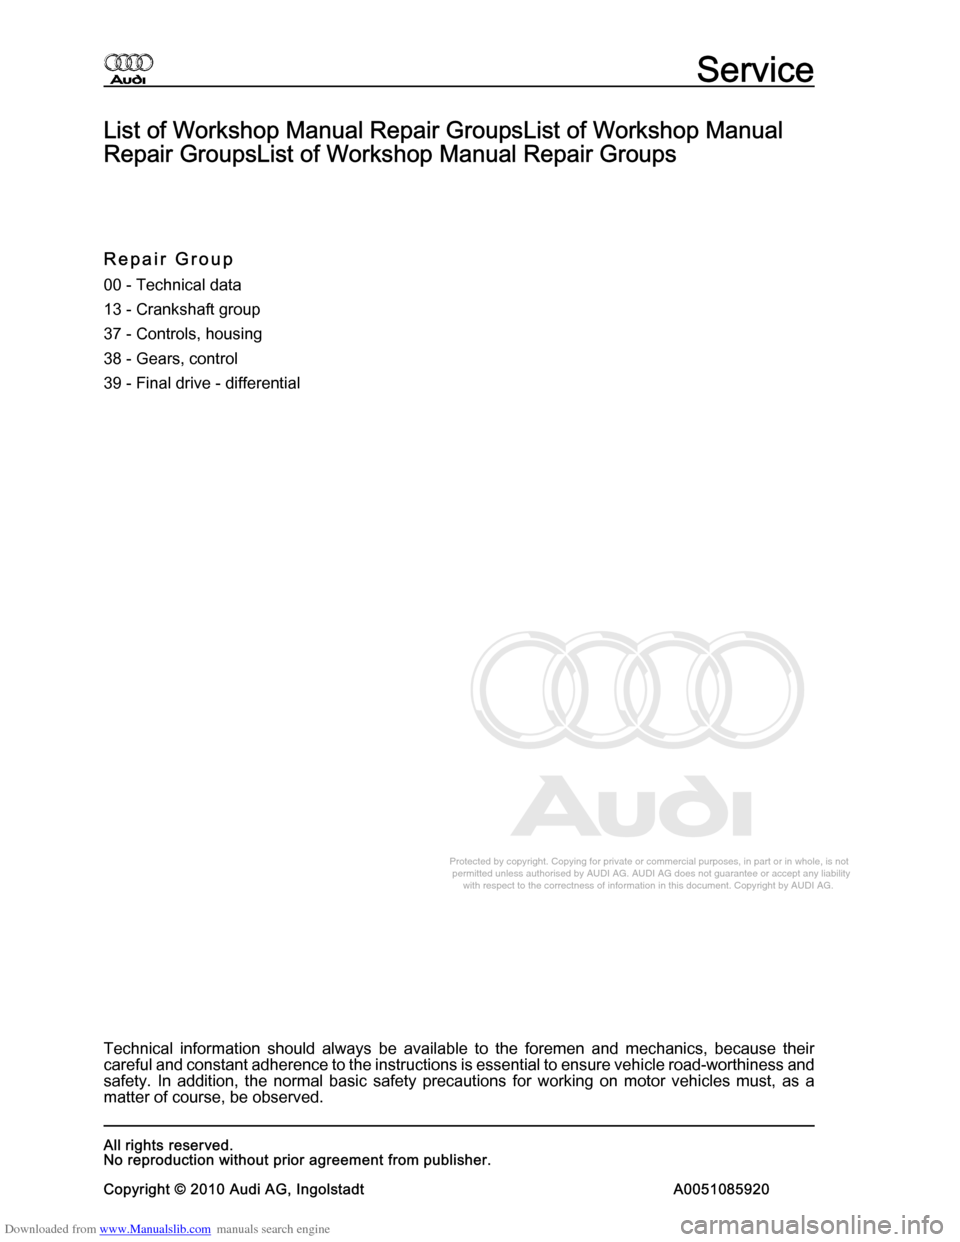 AUDI A8 2003 D3 / 2.G Multitronic System Workshop Manual, Page 2